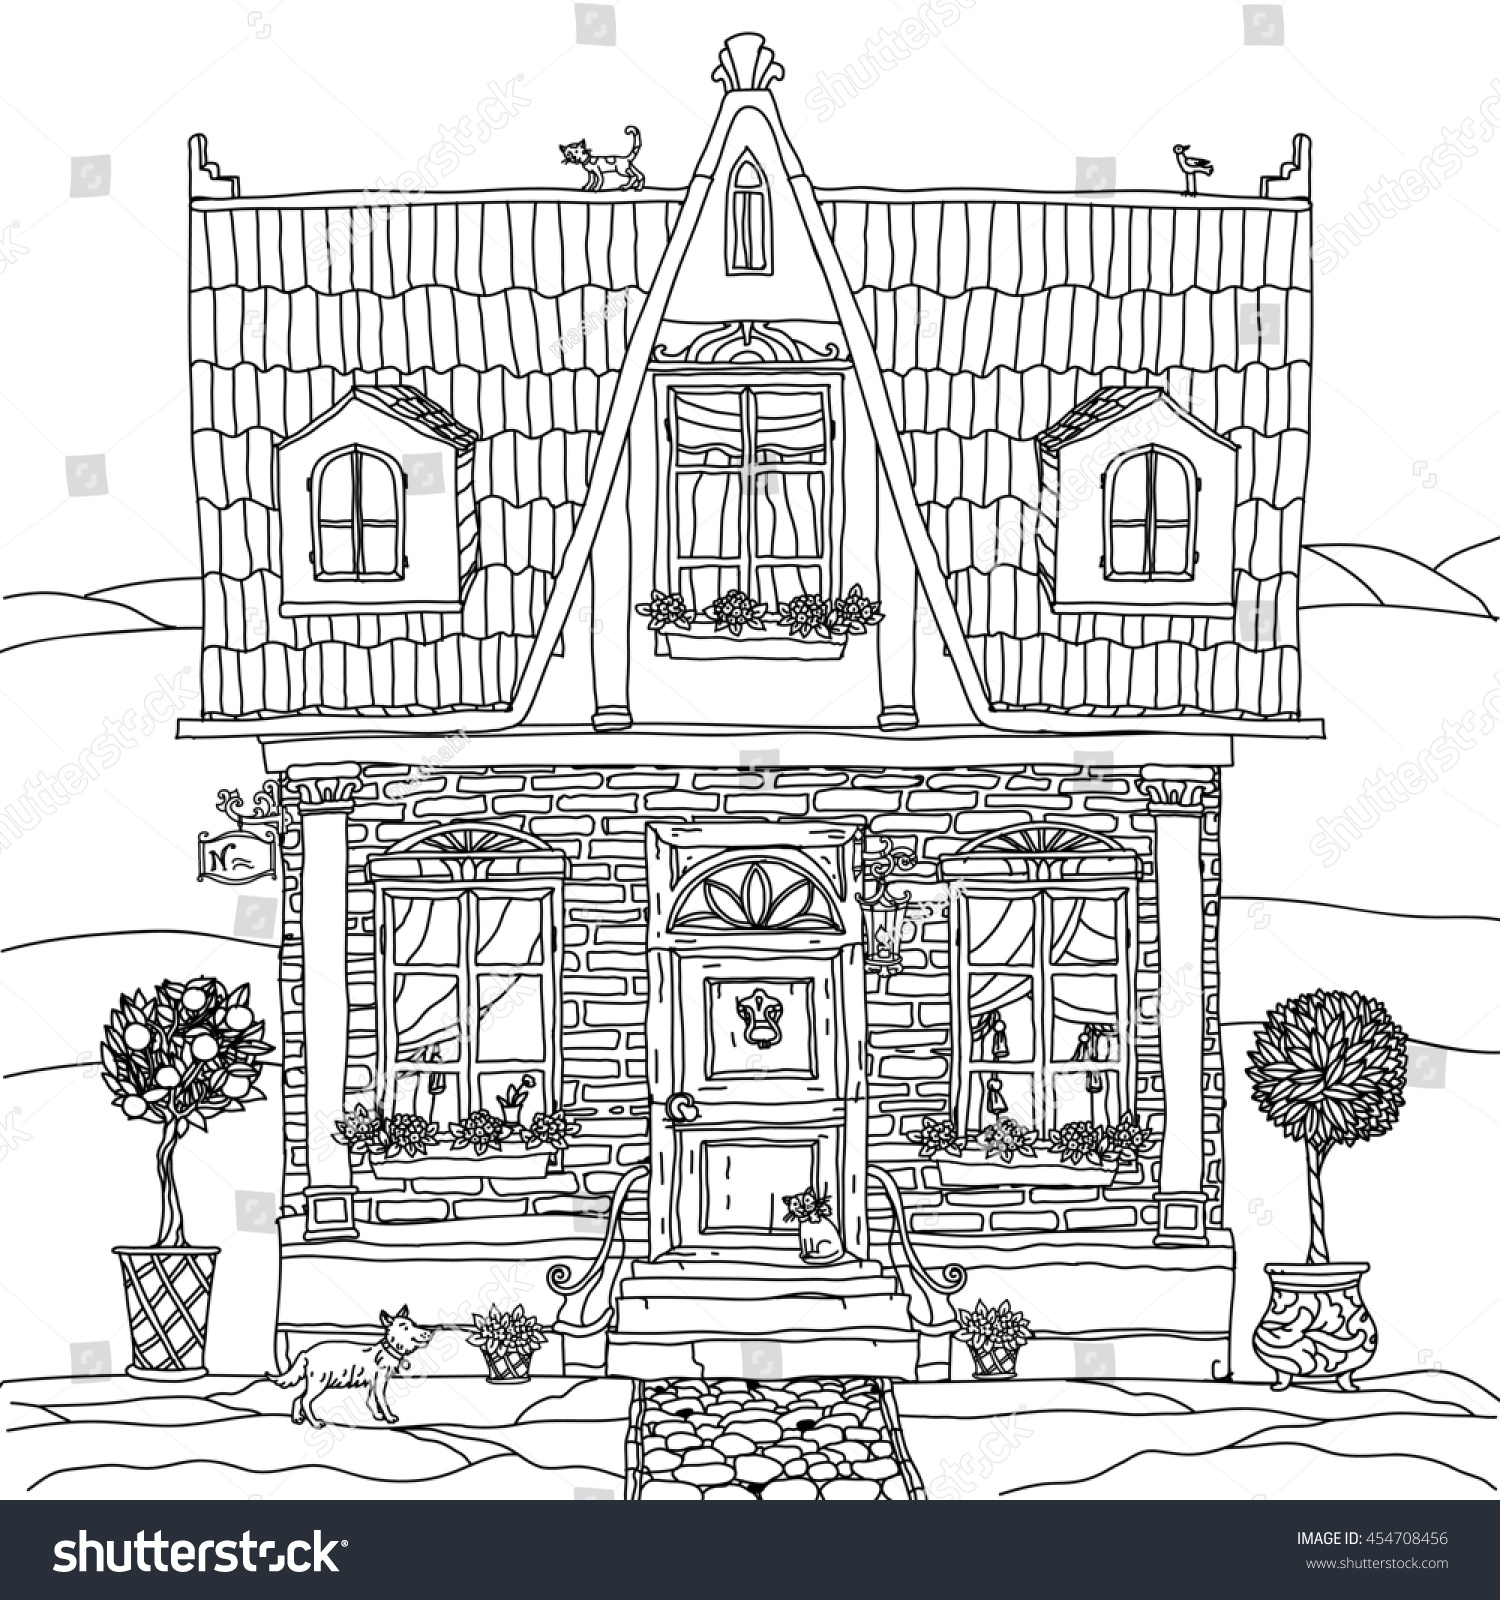 The coloring book poster - Frontage Of A House With Flowers Plants Cat And Dog For Adult Coloring Book